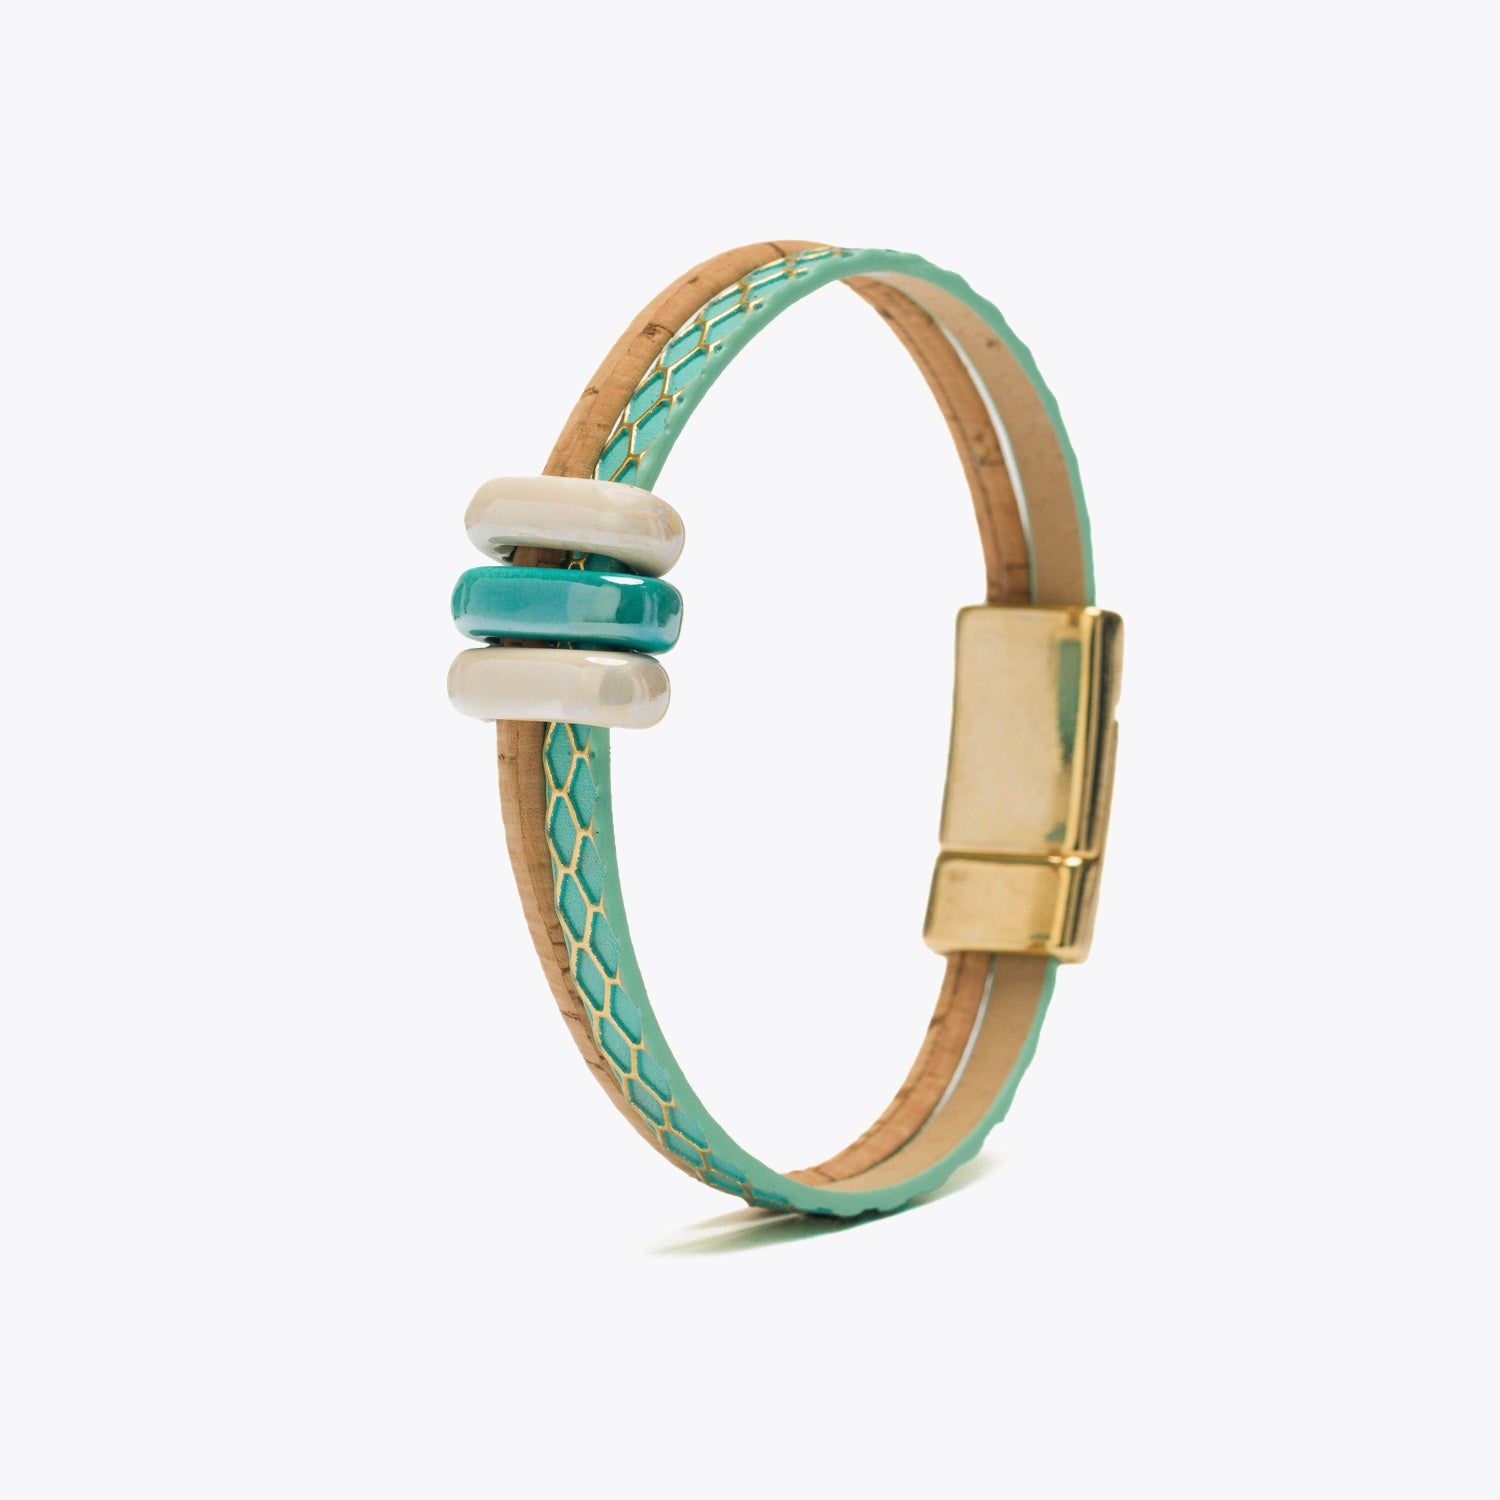 Cork Bracelet with Teal Blue Ribbon and Ceramic